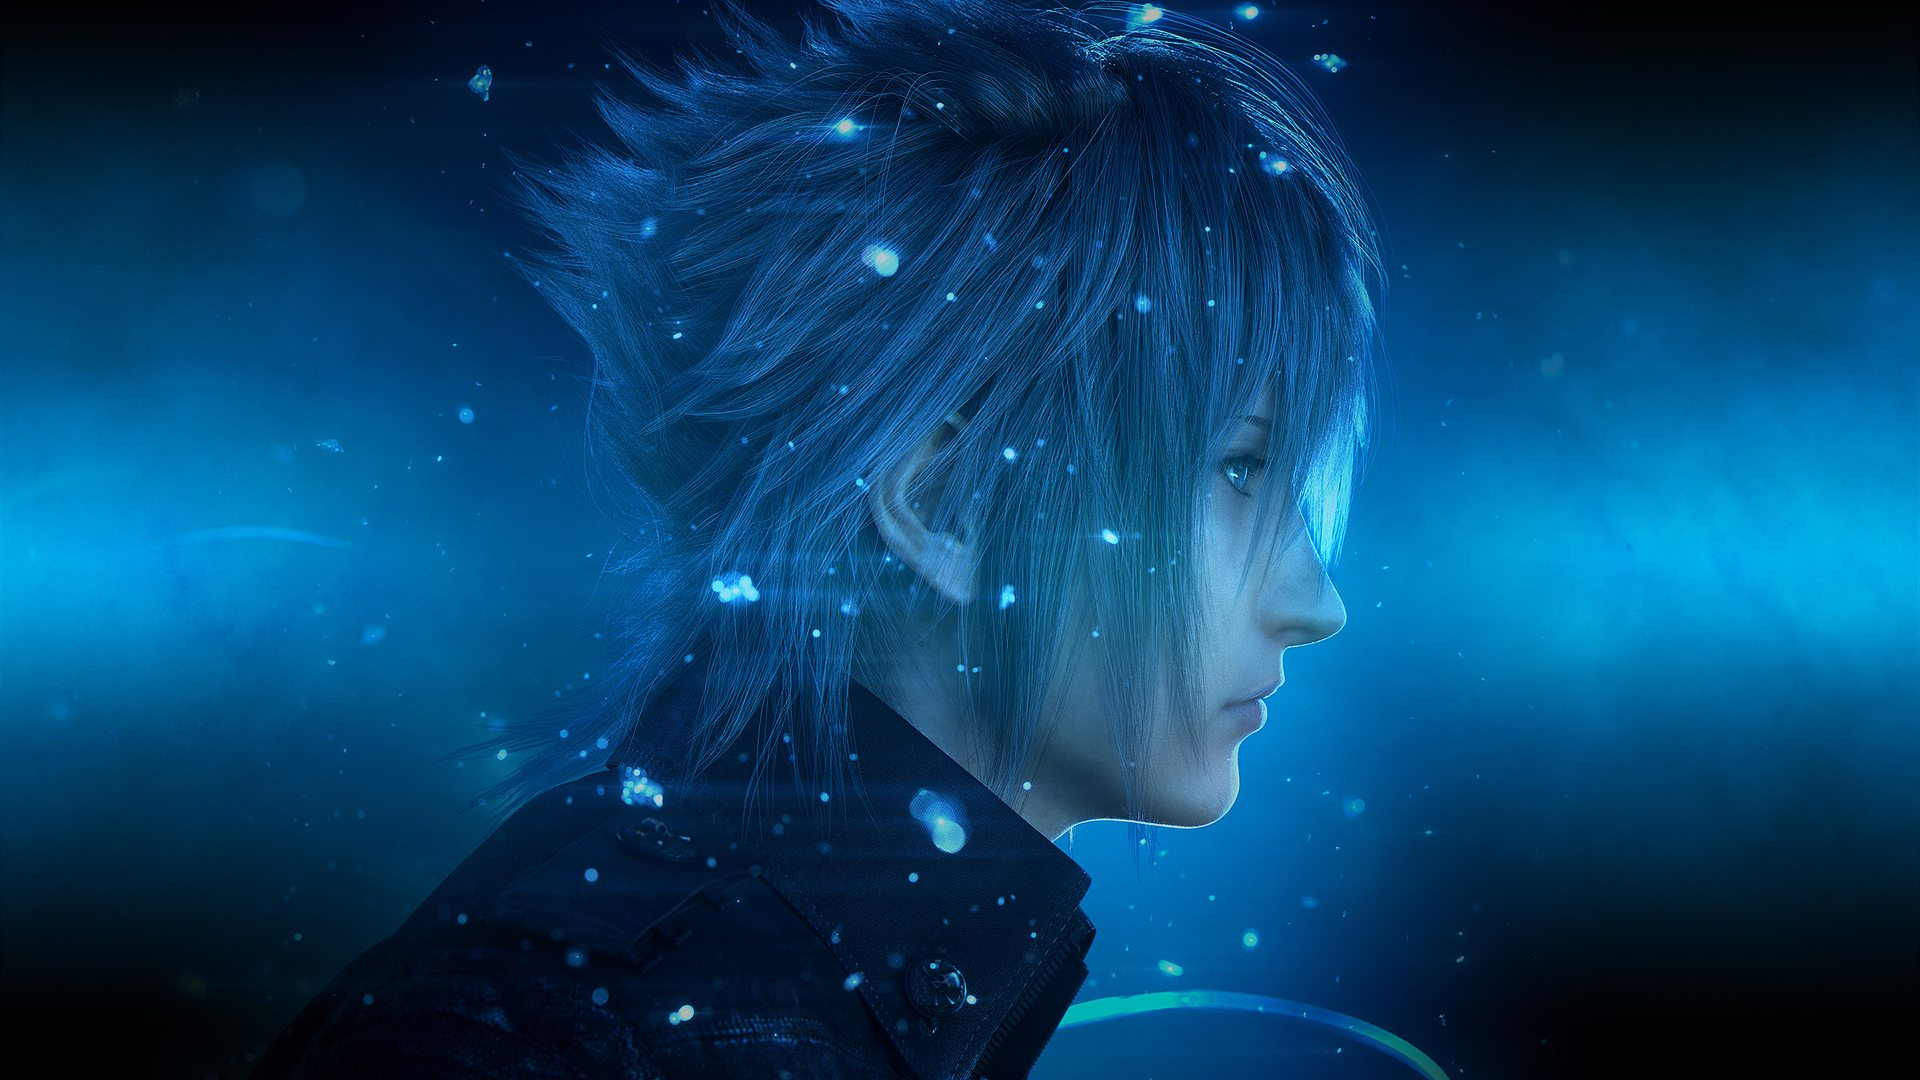 Final Fantasy XV Is Coming To PC